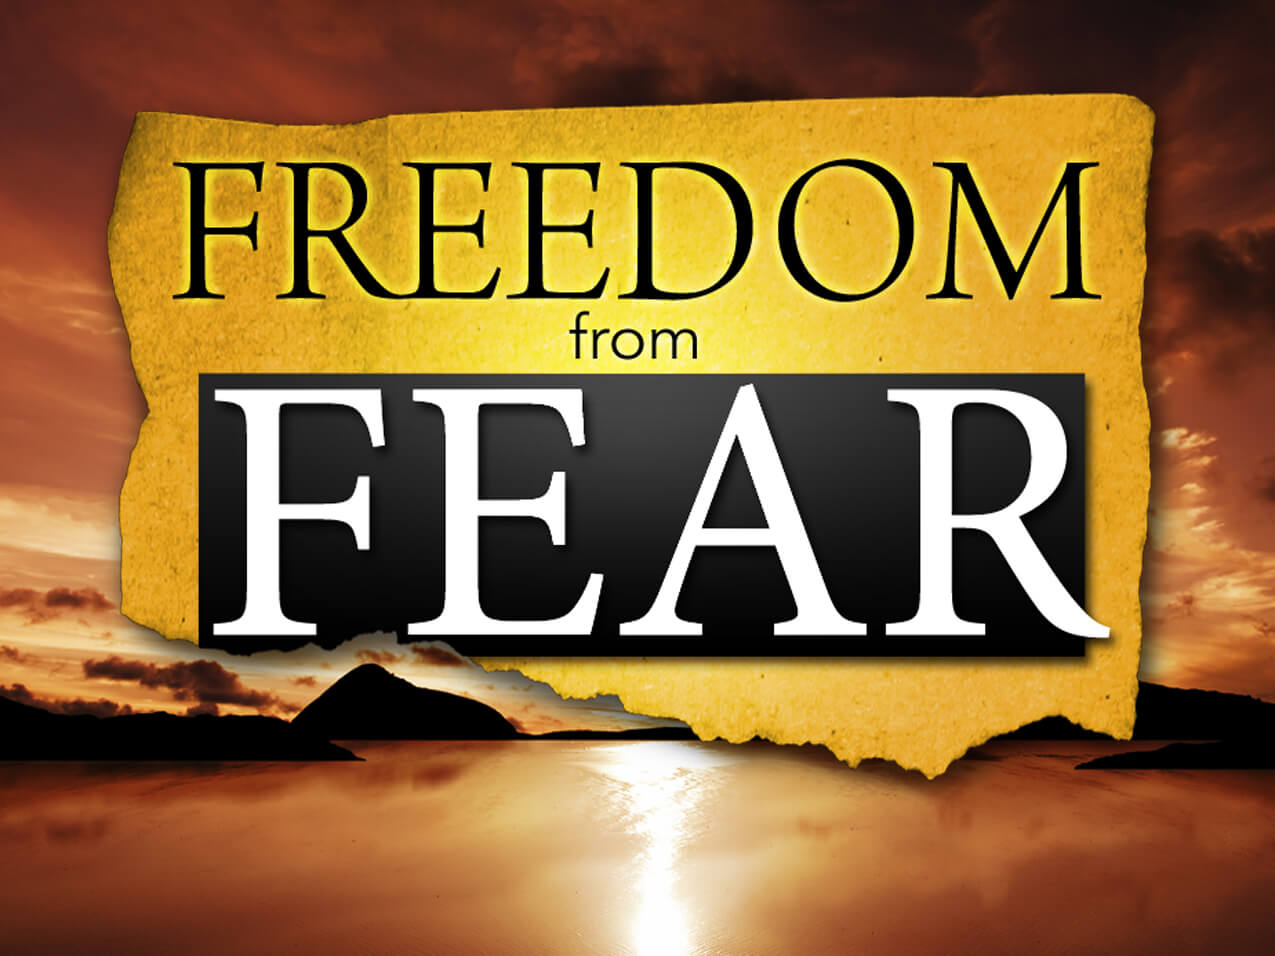 Freedom from fears and anxieties 1